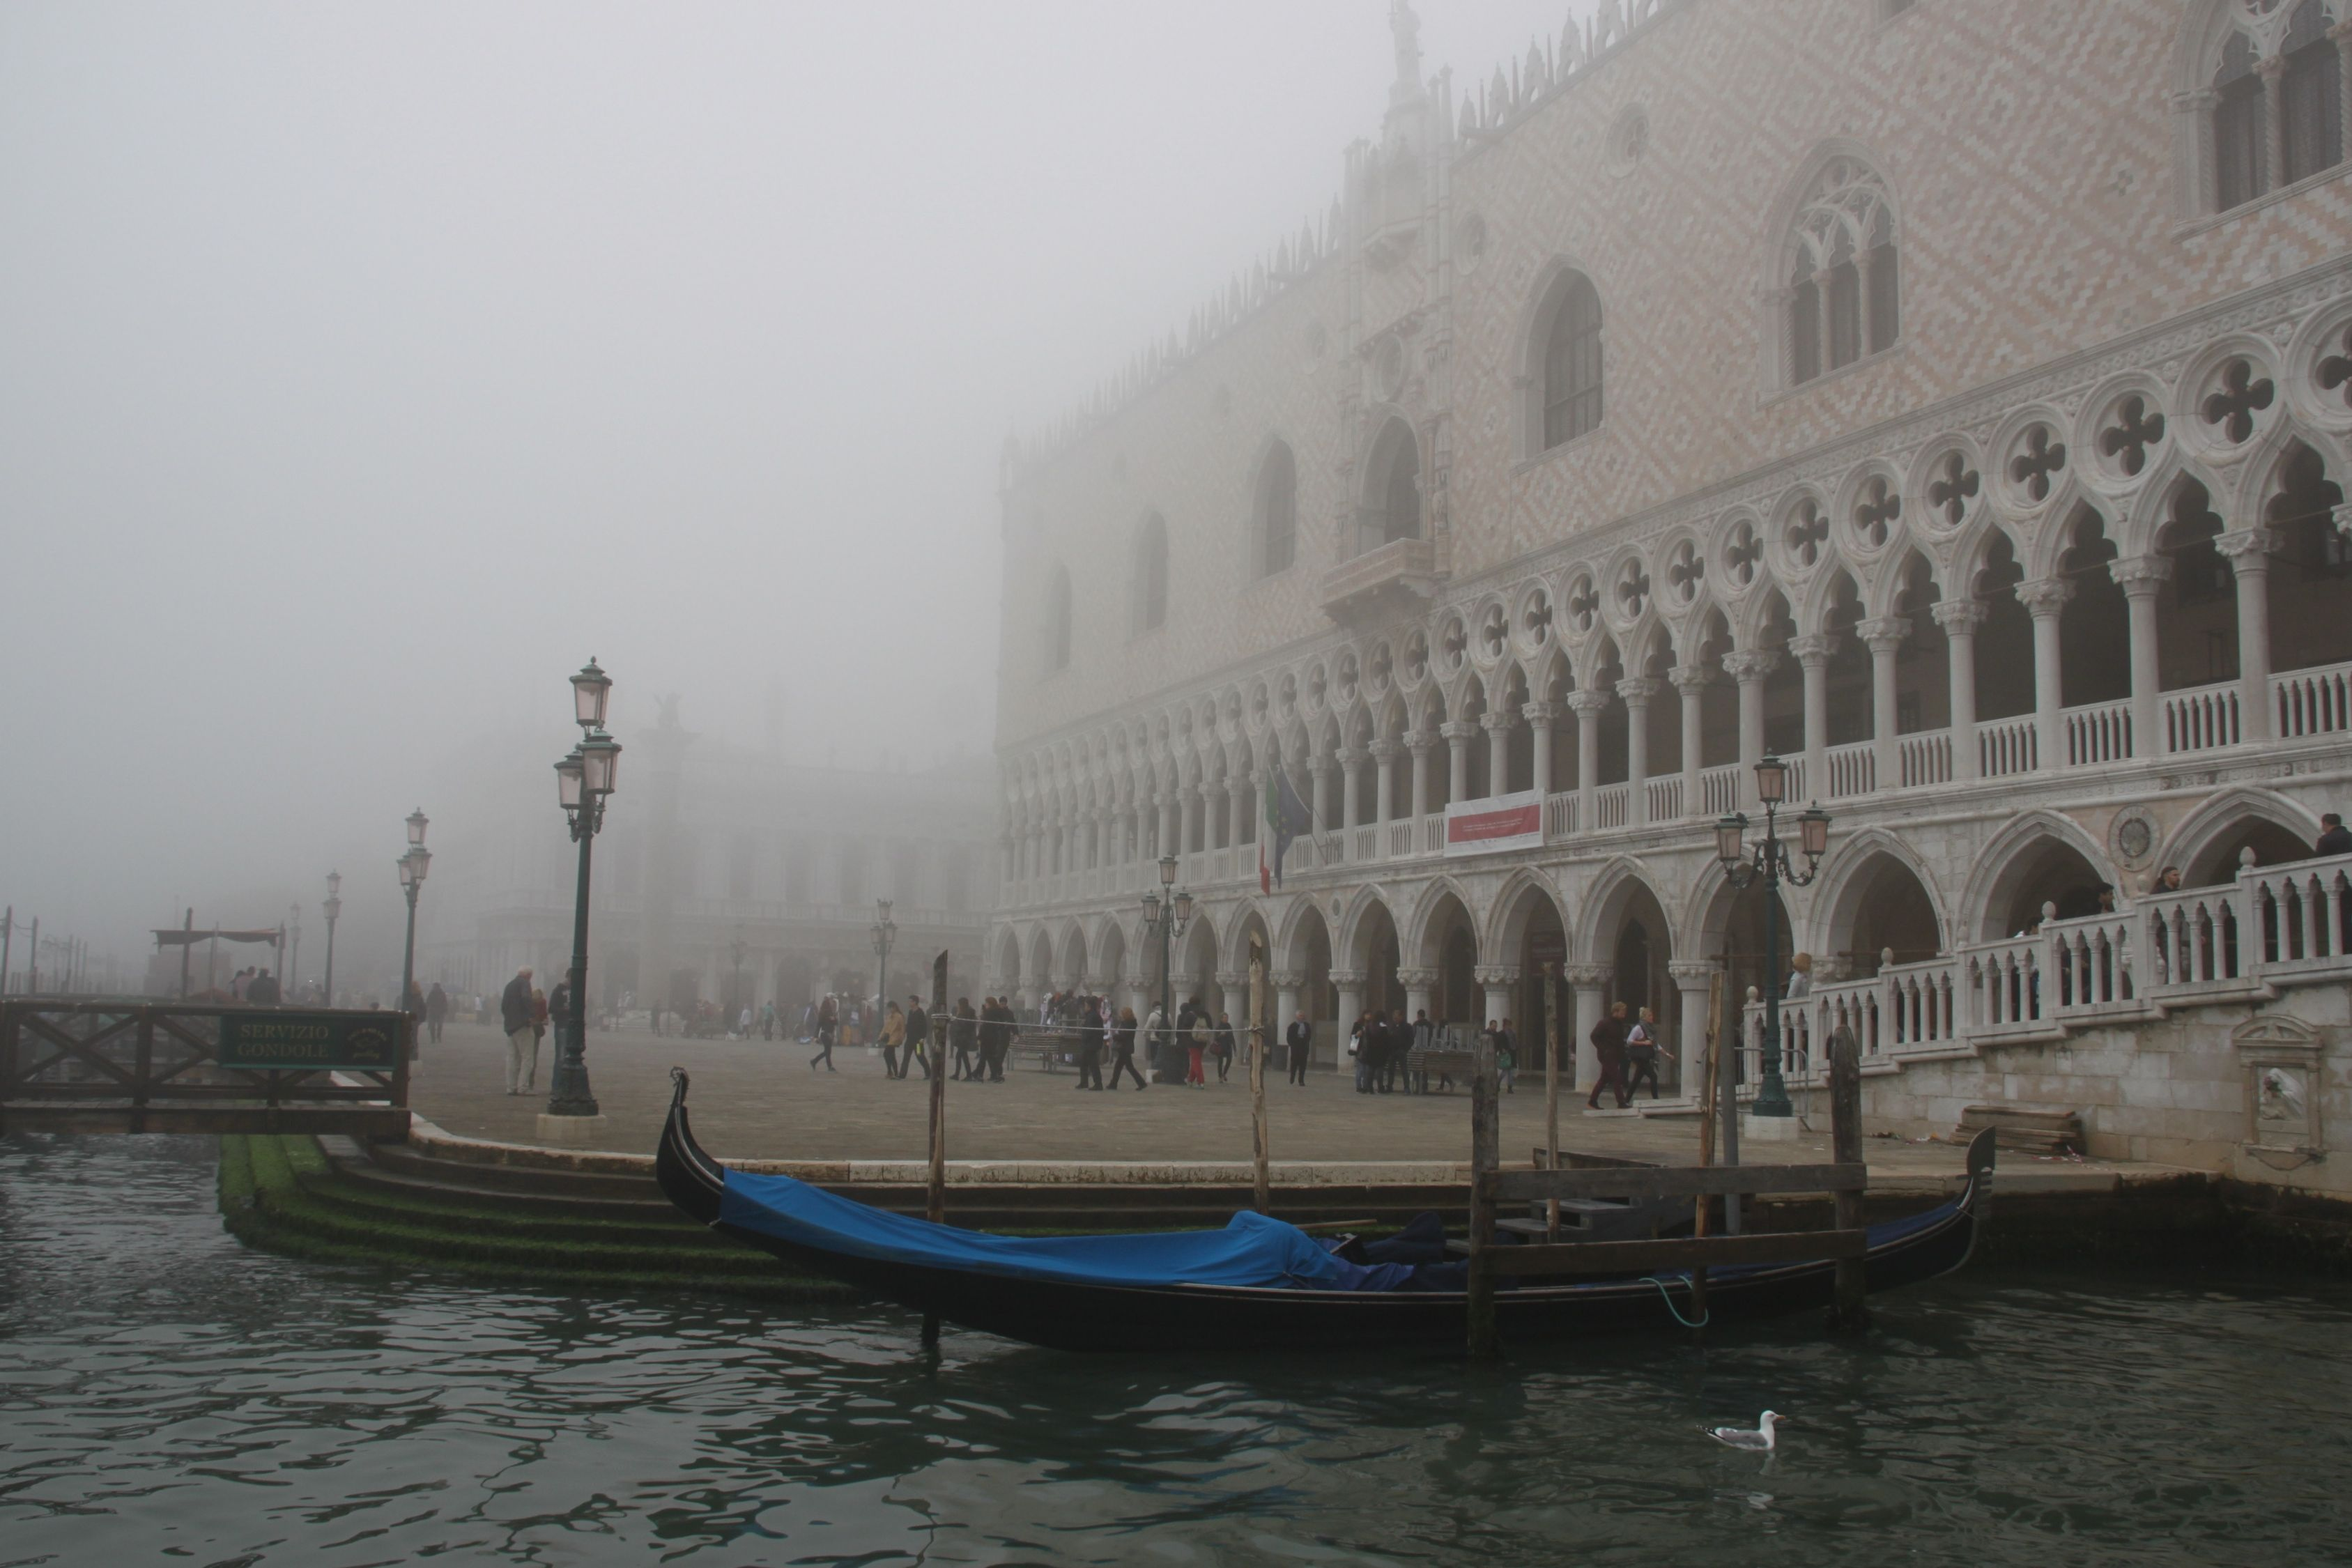 The Doge's Palace dissolves into the fog